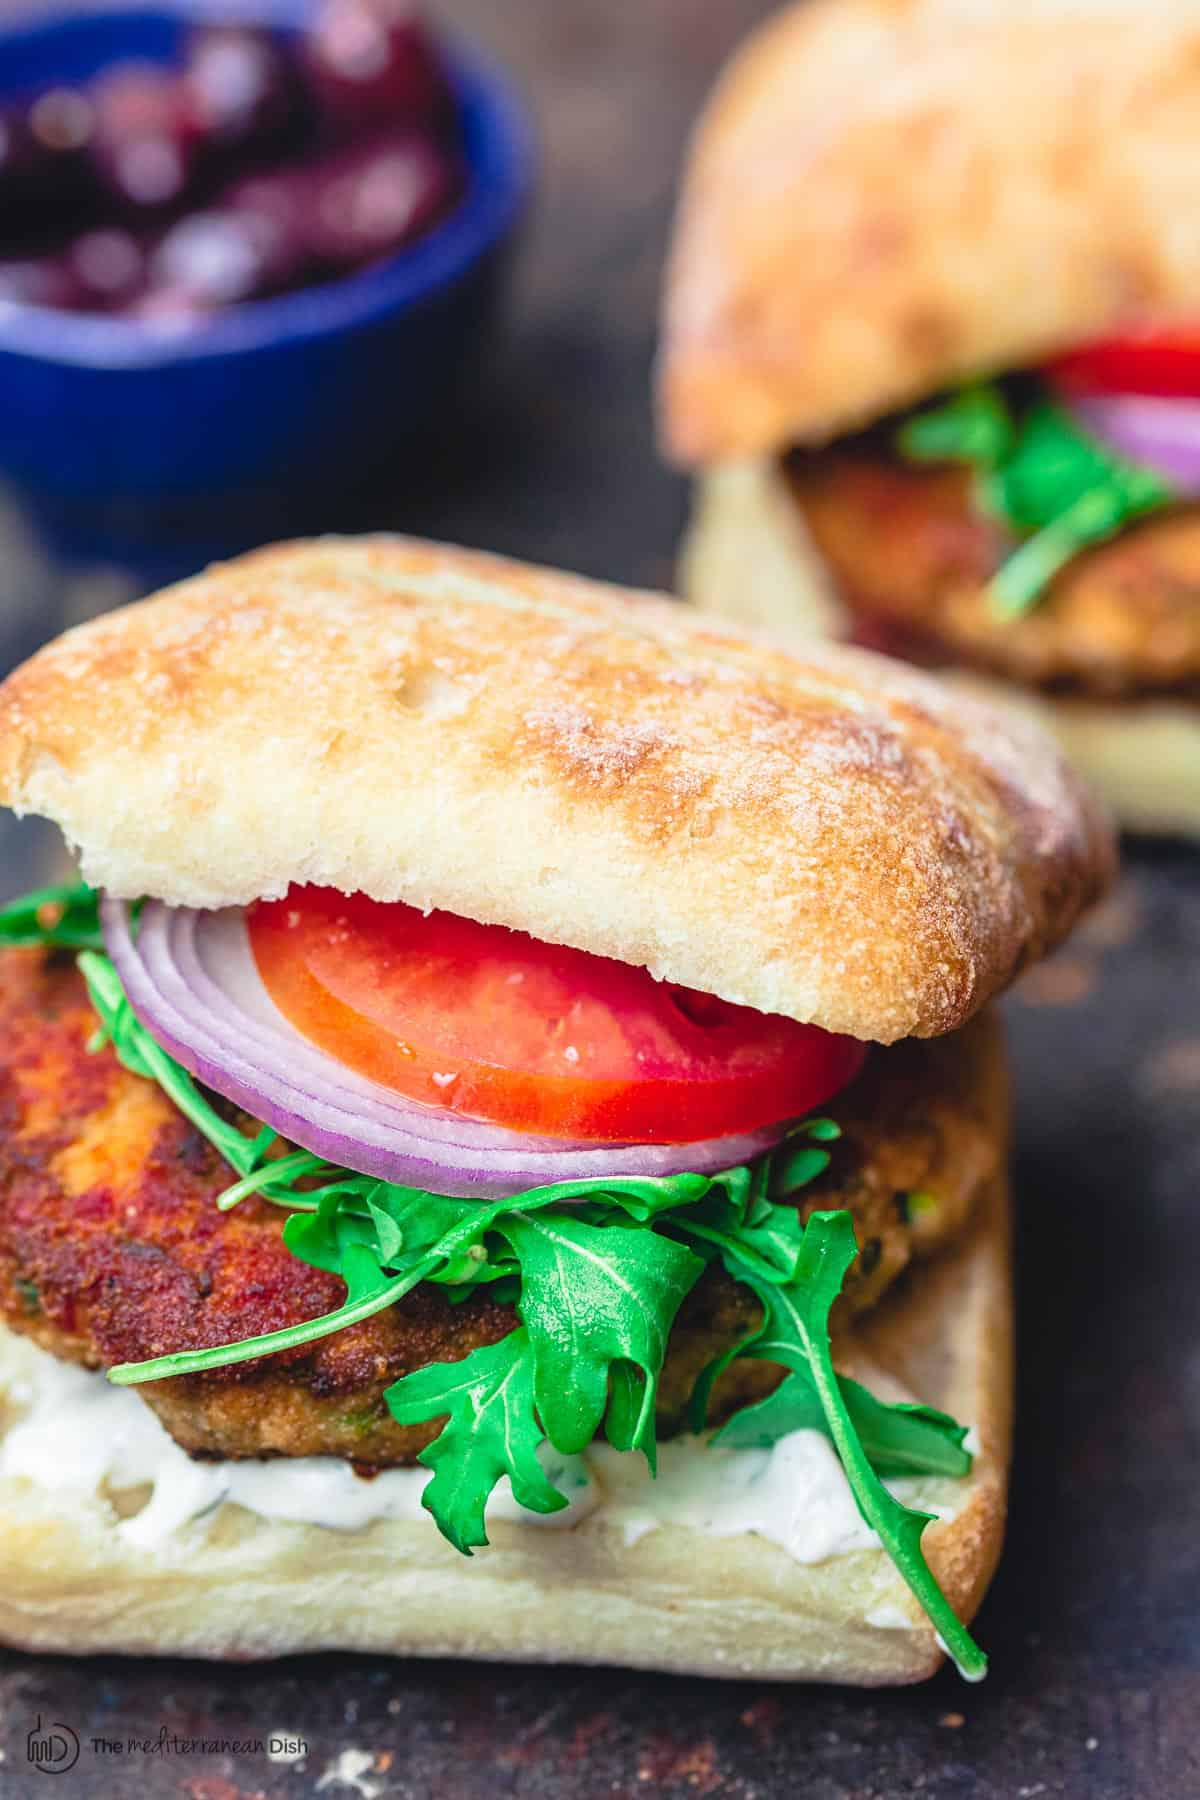 Juicy salmon burgers, served in Italian ciabatta rolls with arugula, tomatoes, and sliced onions